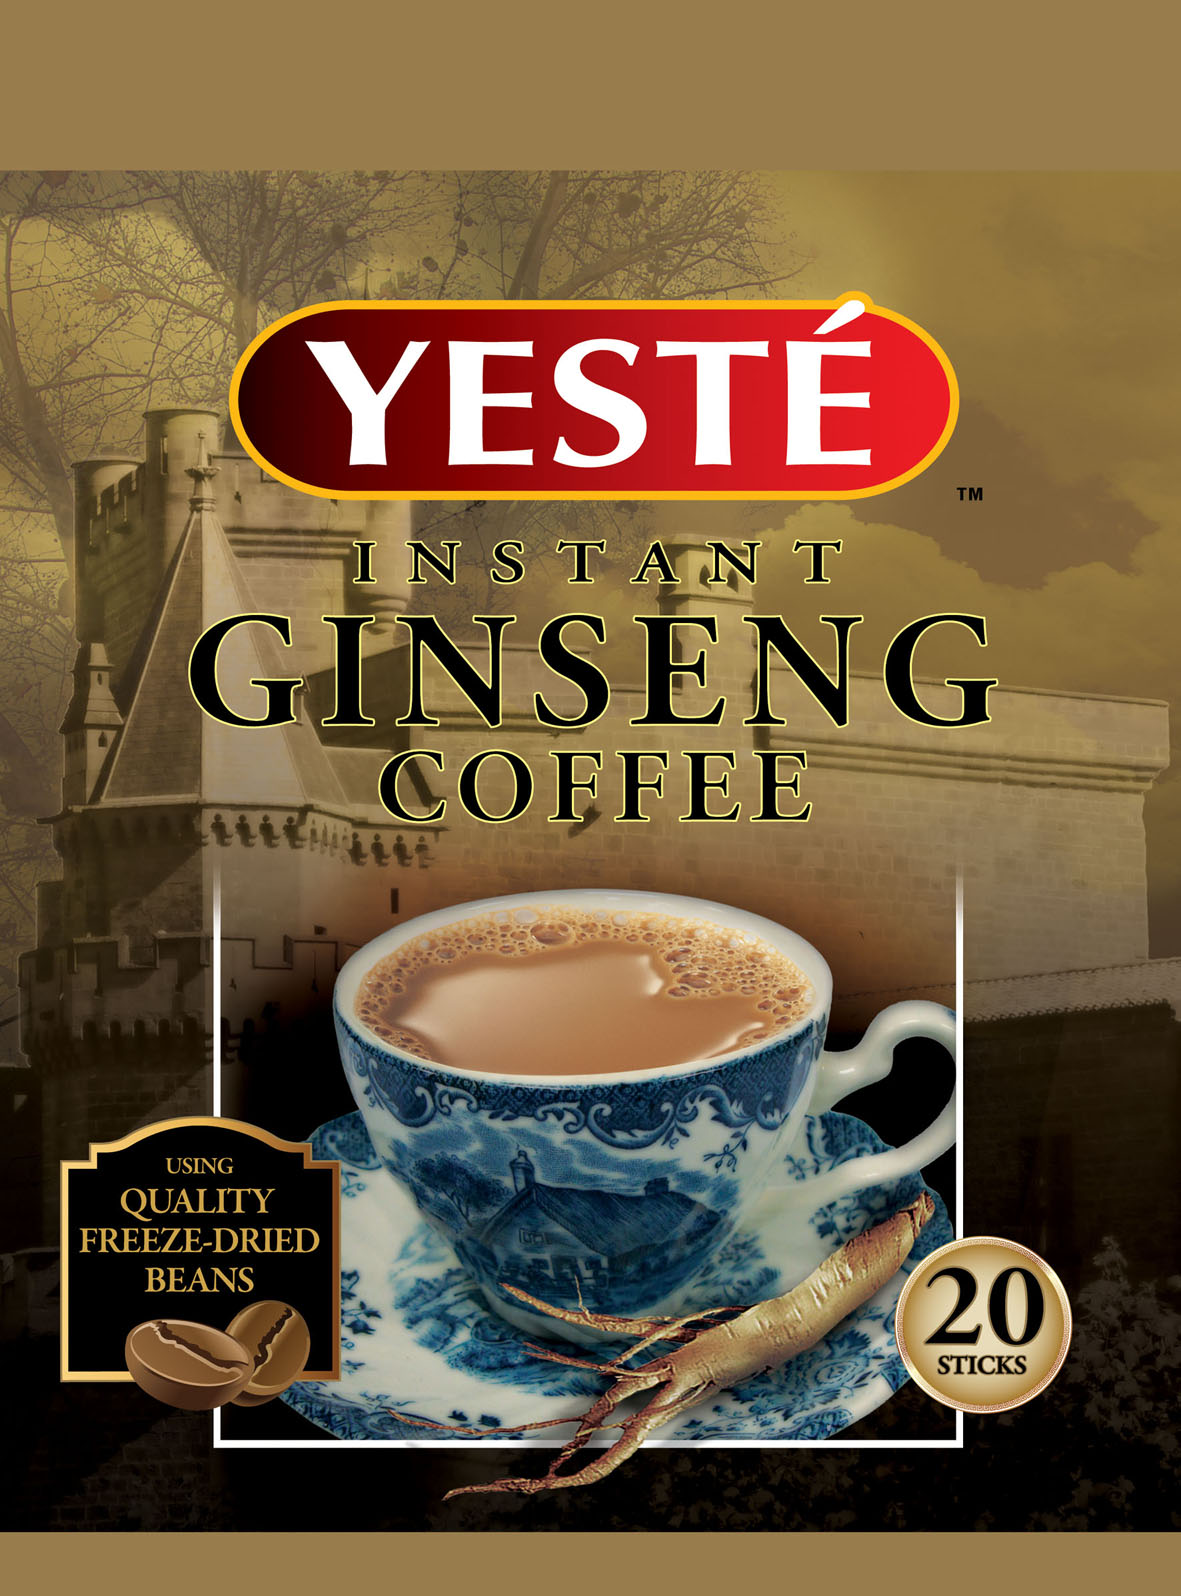 Yeste Ginseng 3 in 1 Instant Coffee Mix Owl International Pte Ltd Coffee/ Coffee Substitutes - Instant Food / Beverage / Tobacco Beverages ...